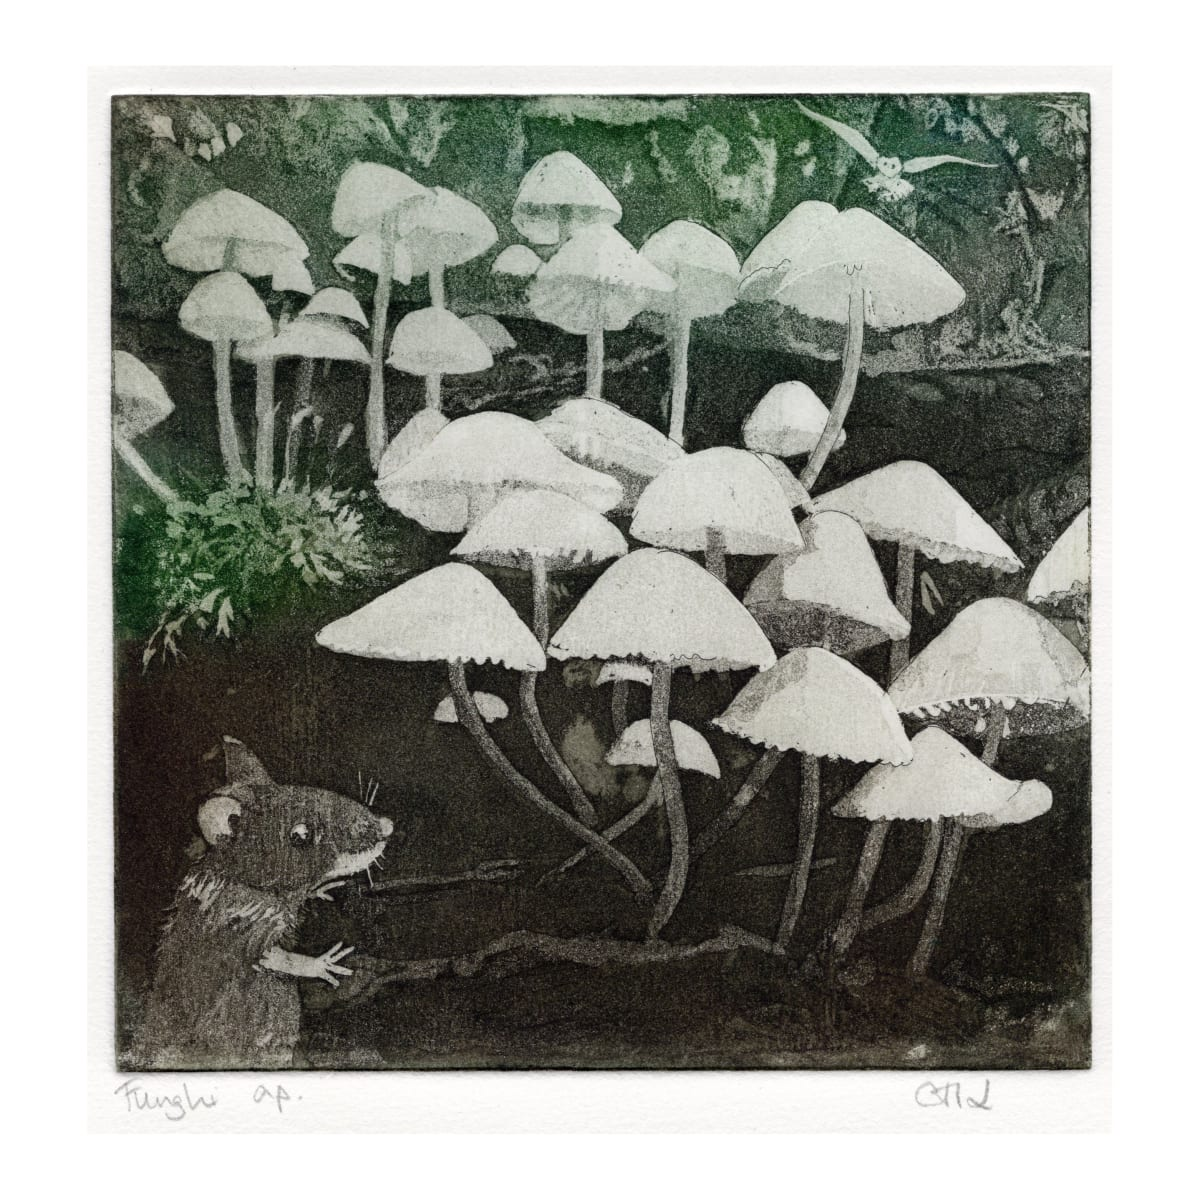 LON177, Funghi, a/p by Claire Longley